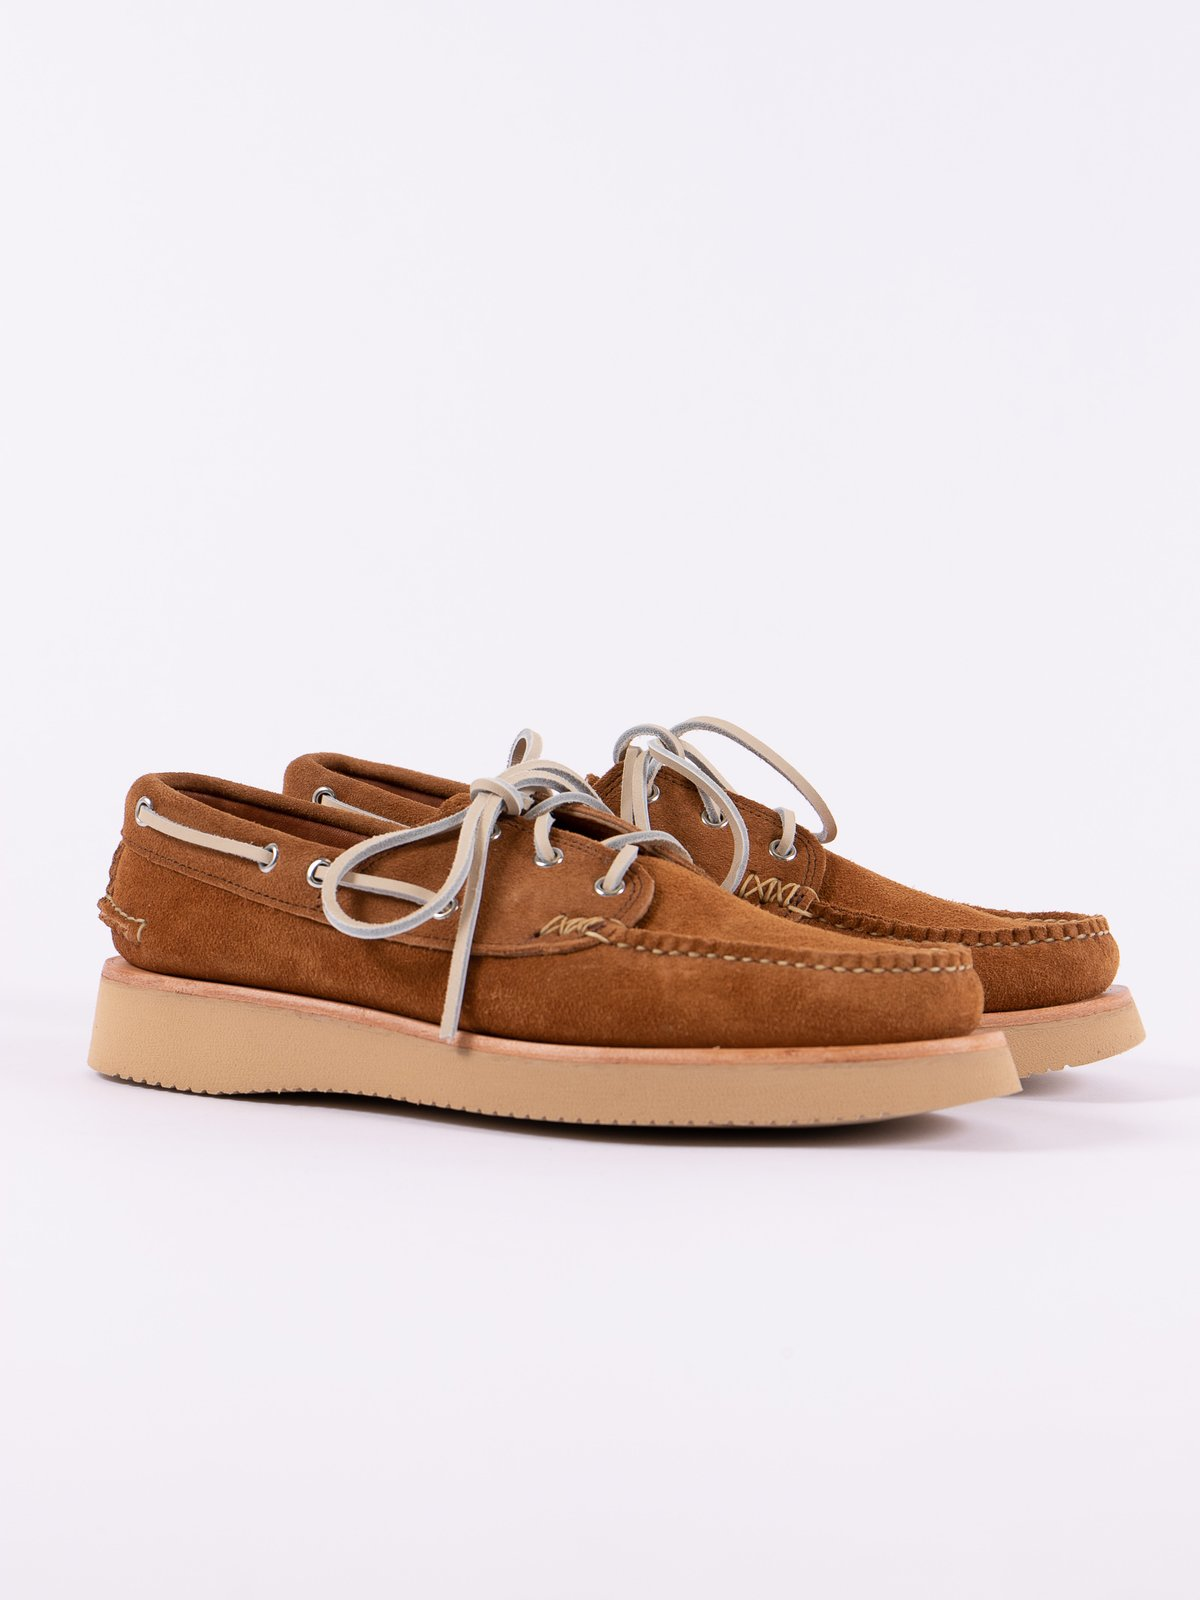 FO Golden Brown Boat Shoe Exclusive - Image 1